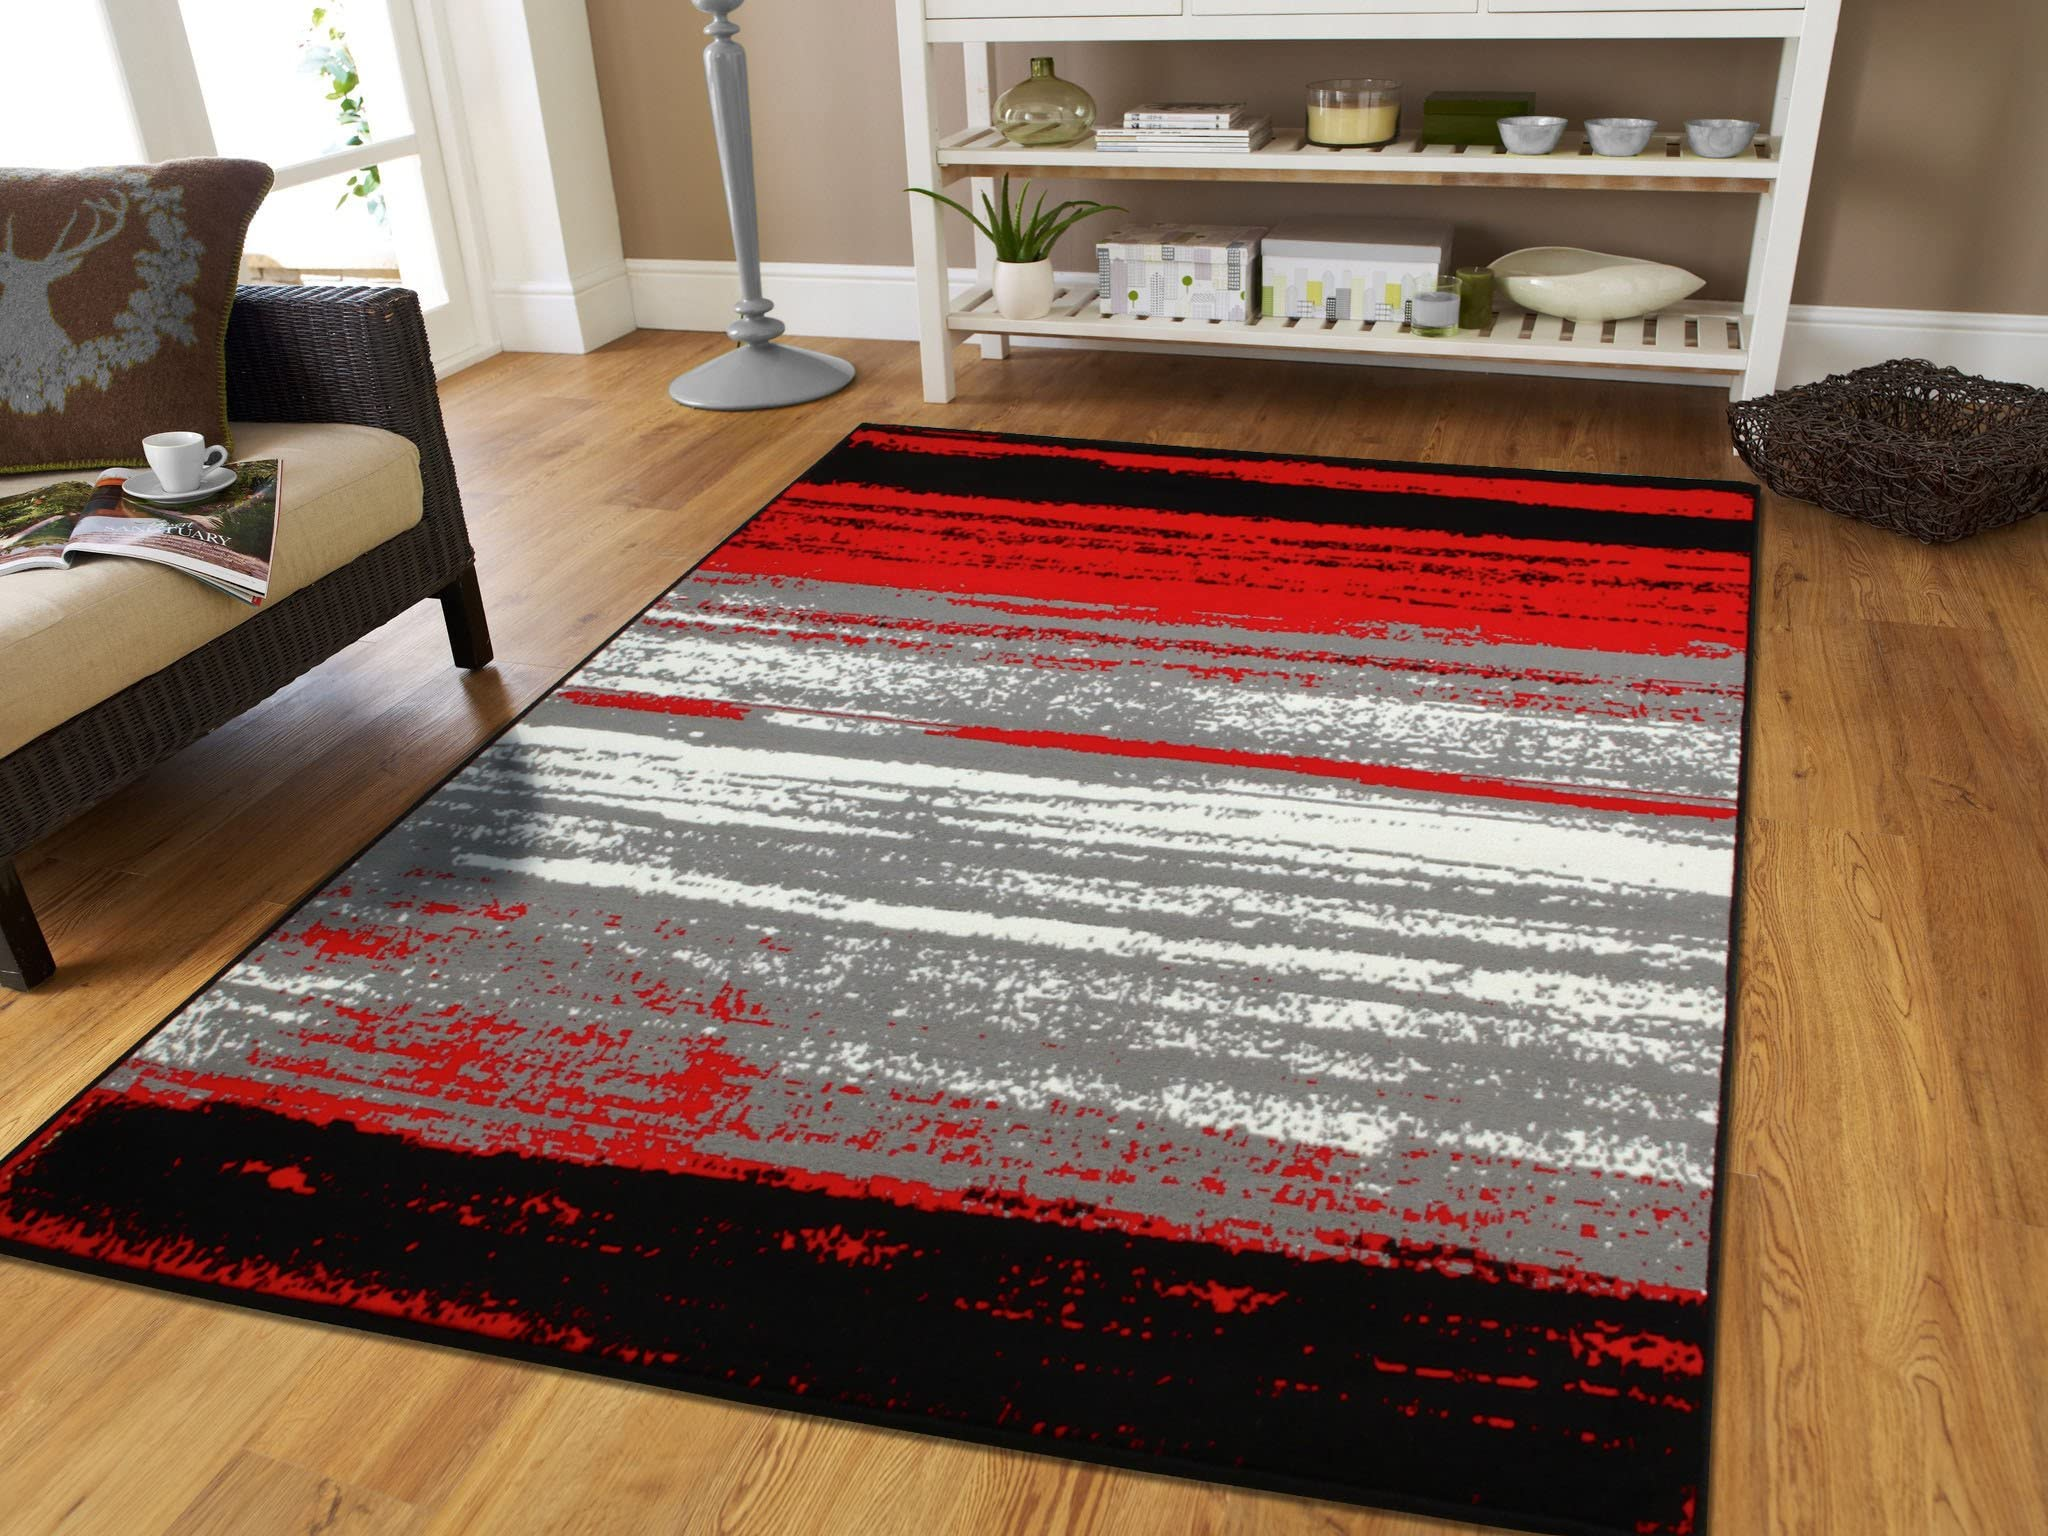 As Quality Rugs Red Abstract Runner Rug 2x8 Hallway Runners With Reds Black Grey White 2 By 7 Kitchen Runner Rug 2x8 Abstract Runner Furniture Decor